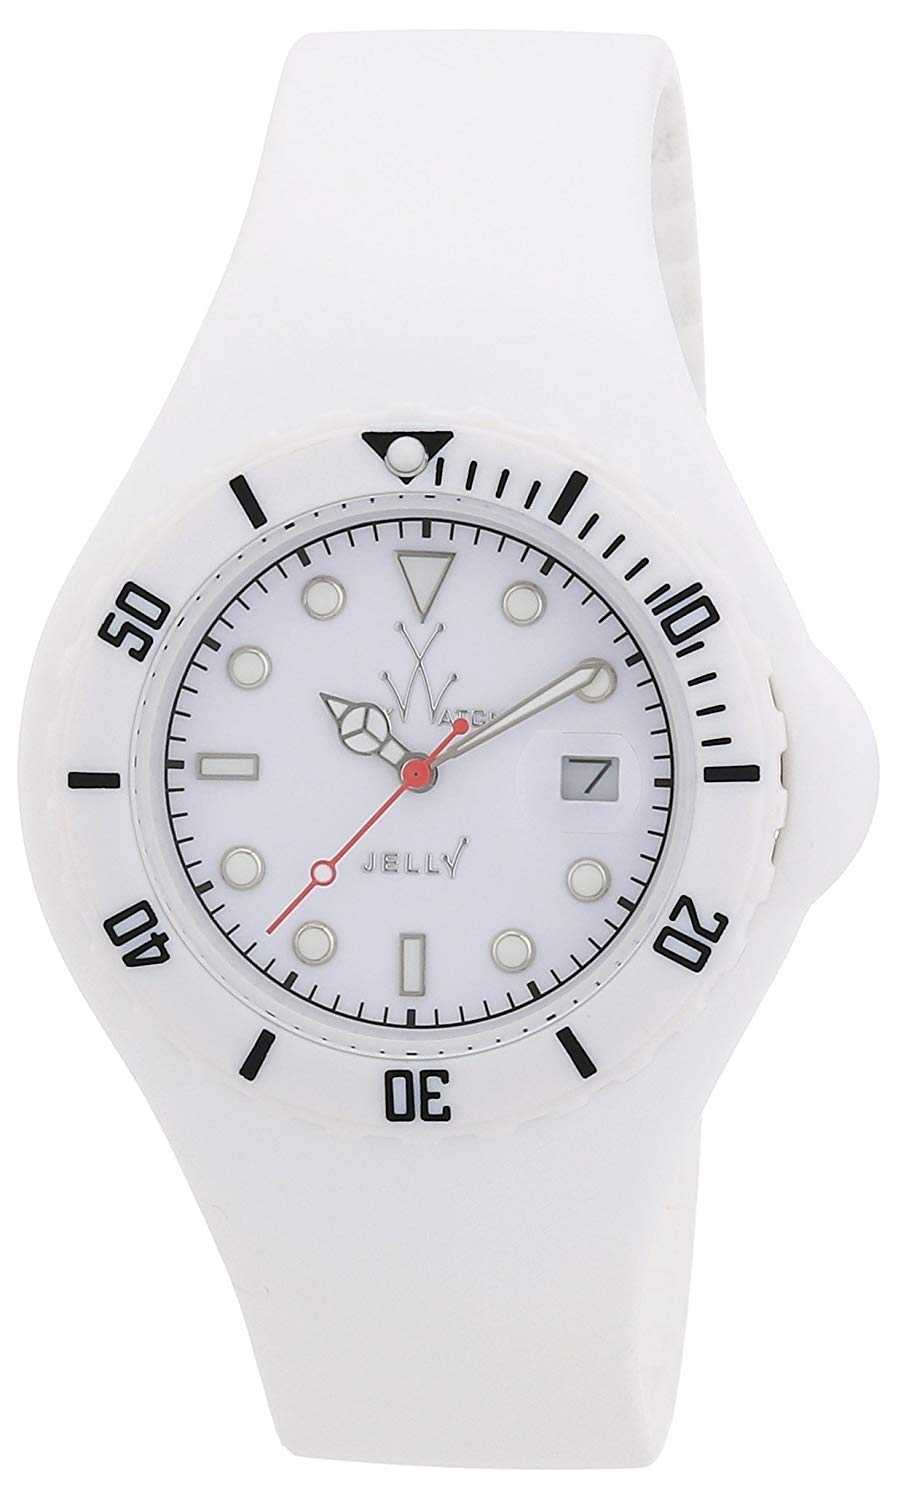 Watch_Toy_Watch_Polycarbonate_White_White_Unisex_-_Men_And_Women_Jy01w